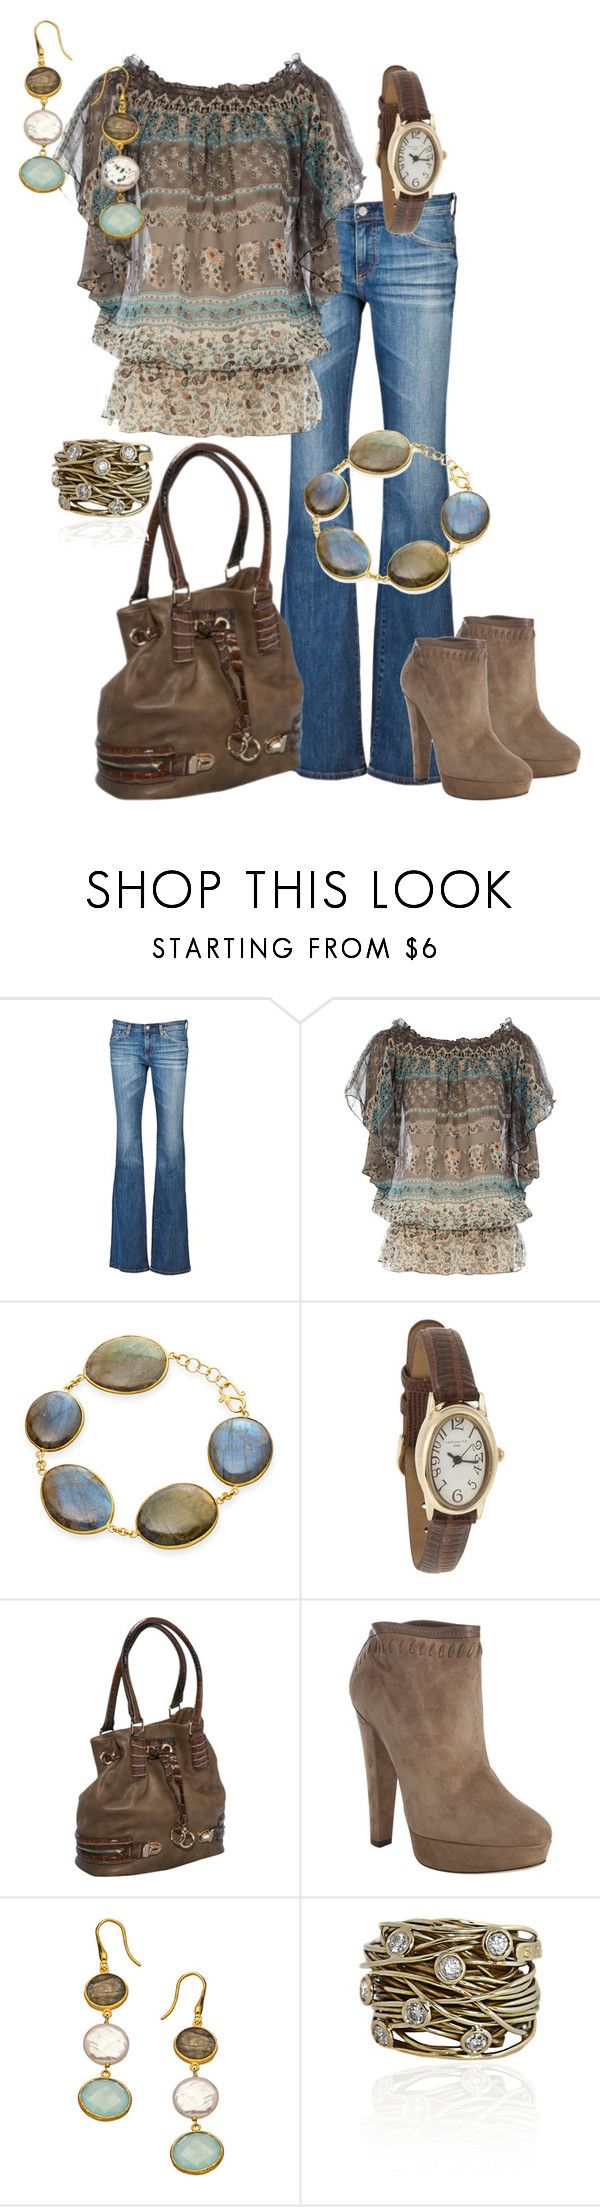 """Untitled #148"" by alison-louis-ellis ❤ liked on Polyvore featuring AG Adriano Goldschmied, Dorothy Perkins, Pippa Small, Infinite, Melie Bianco, Jimmy Choo, Seraphina and Boaz Kashi"